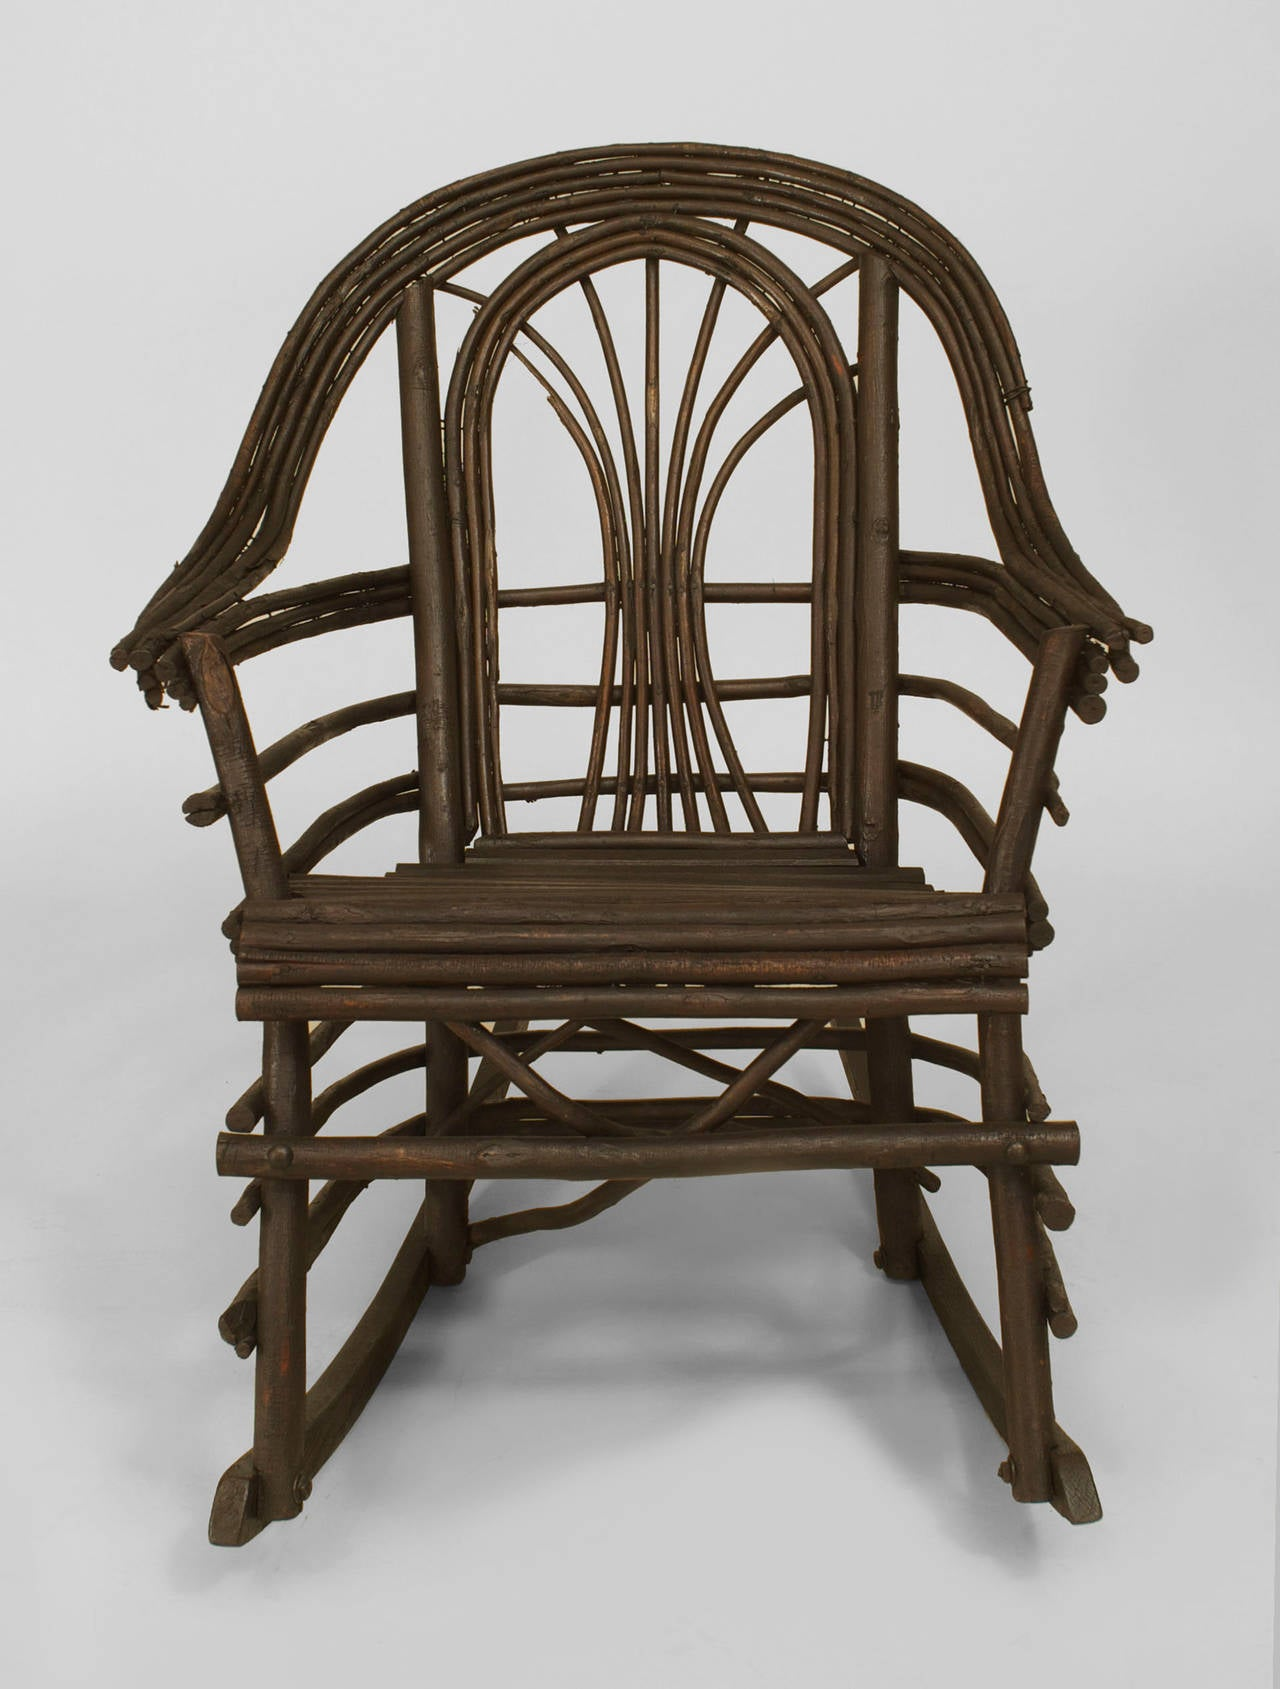 Home / Furniture / Seating / Rocking Chairs